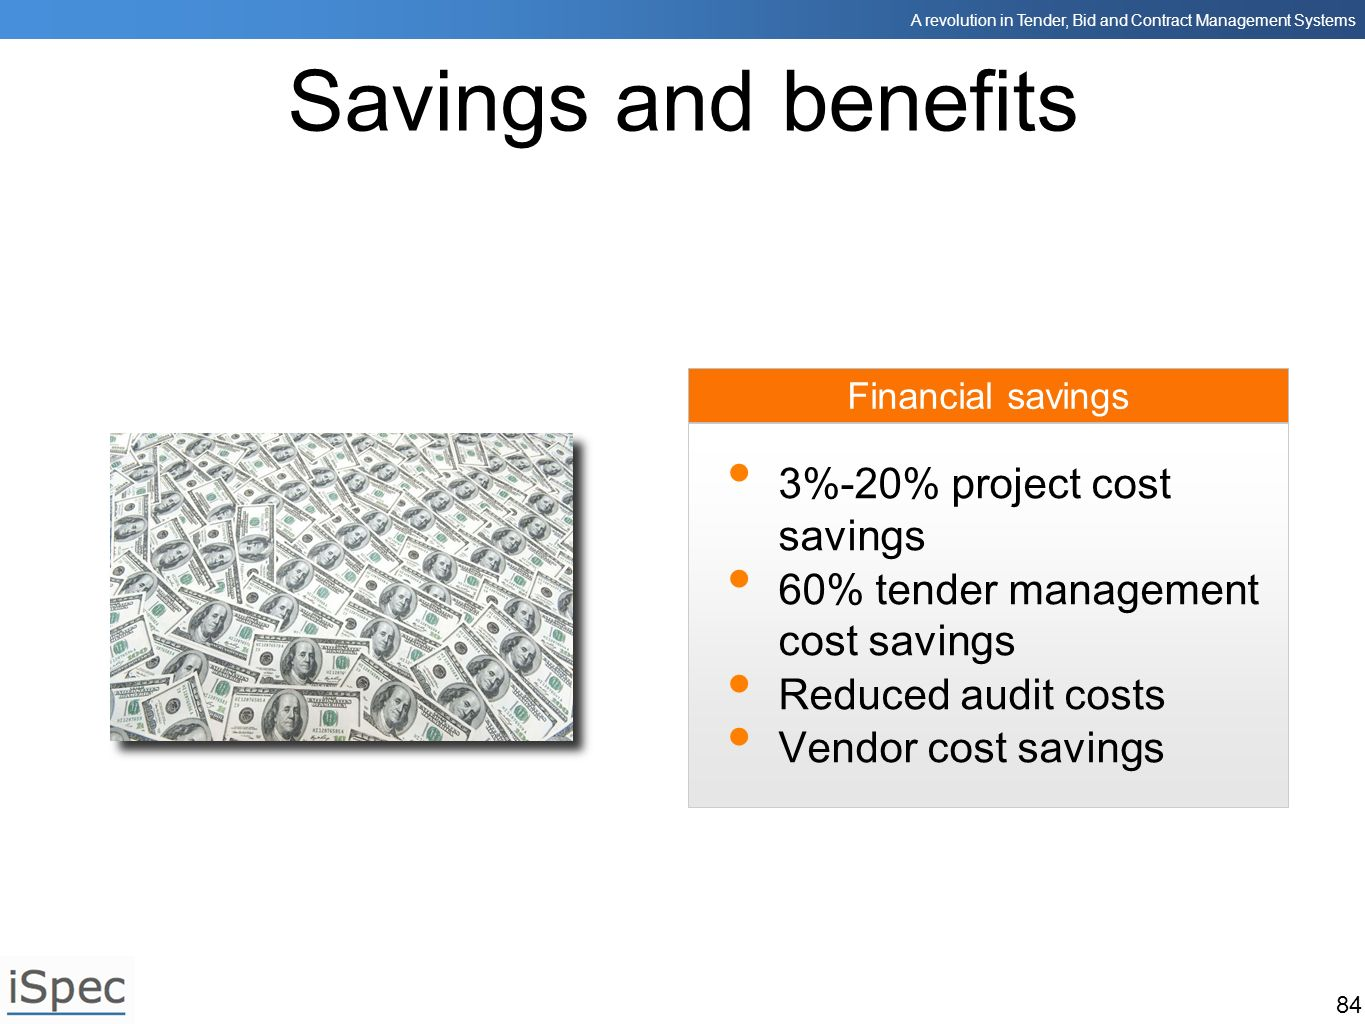 Savings and benefits 3%-20% project cost savings